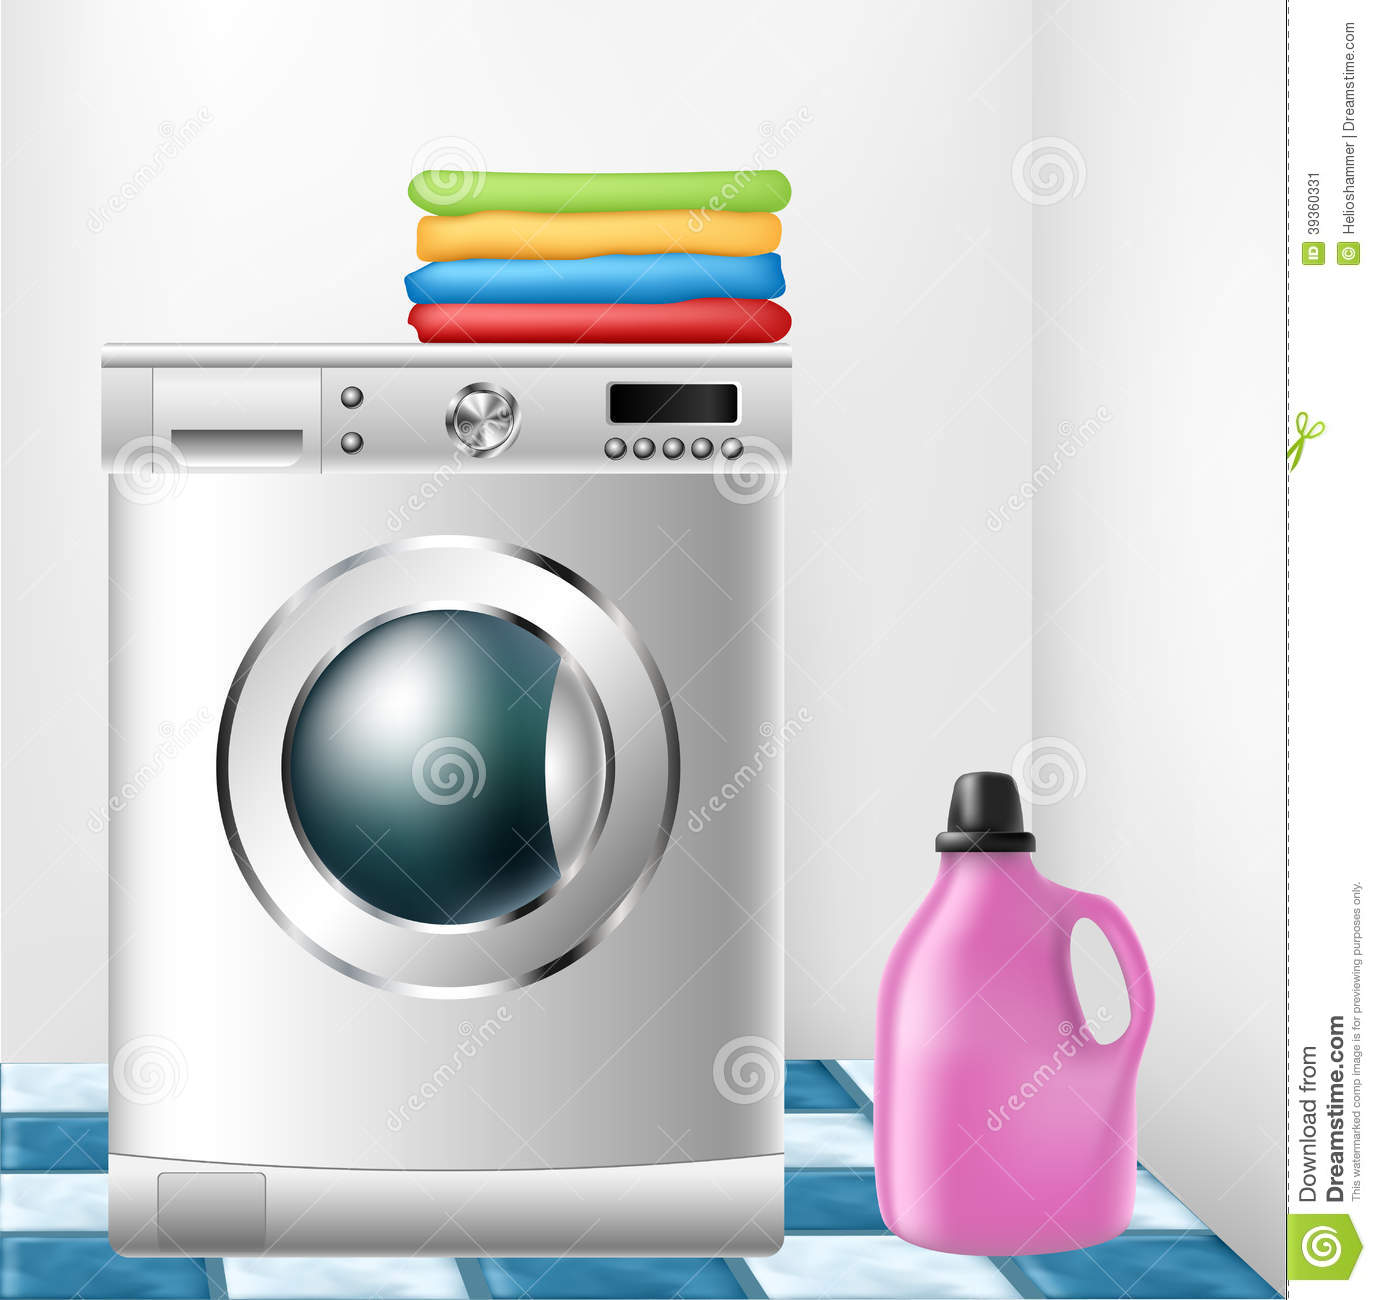 Washing Machine With Clothes And Detergent Bottle Stock